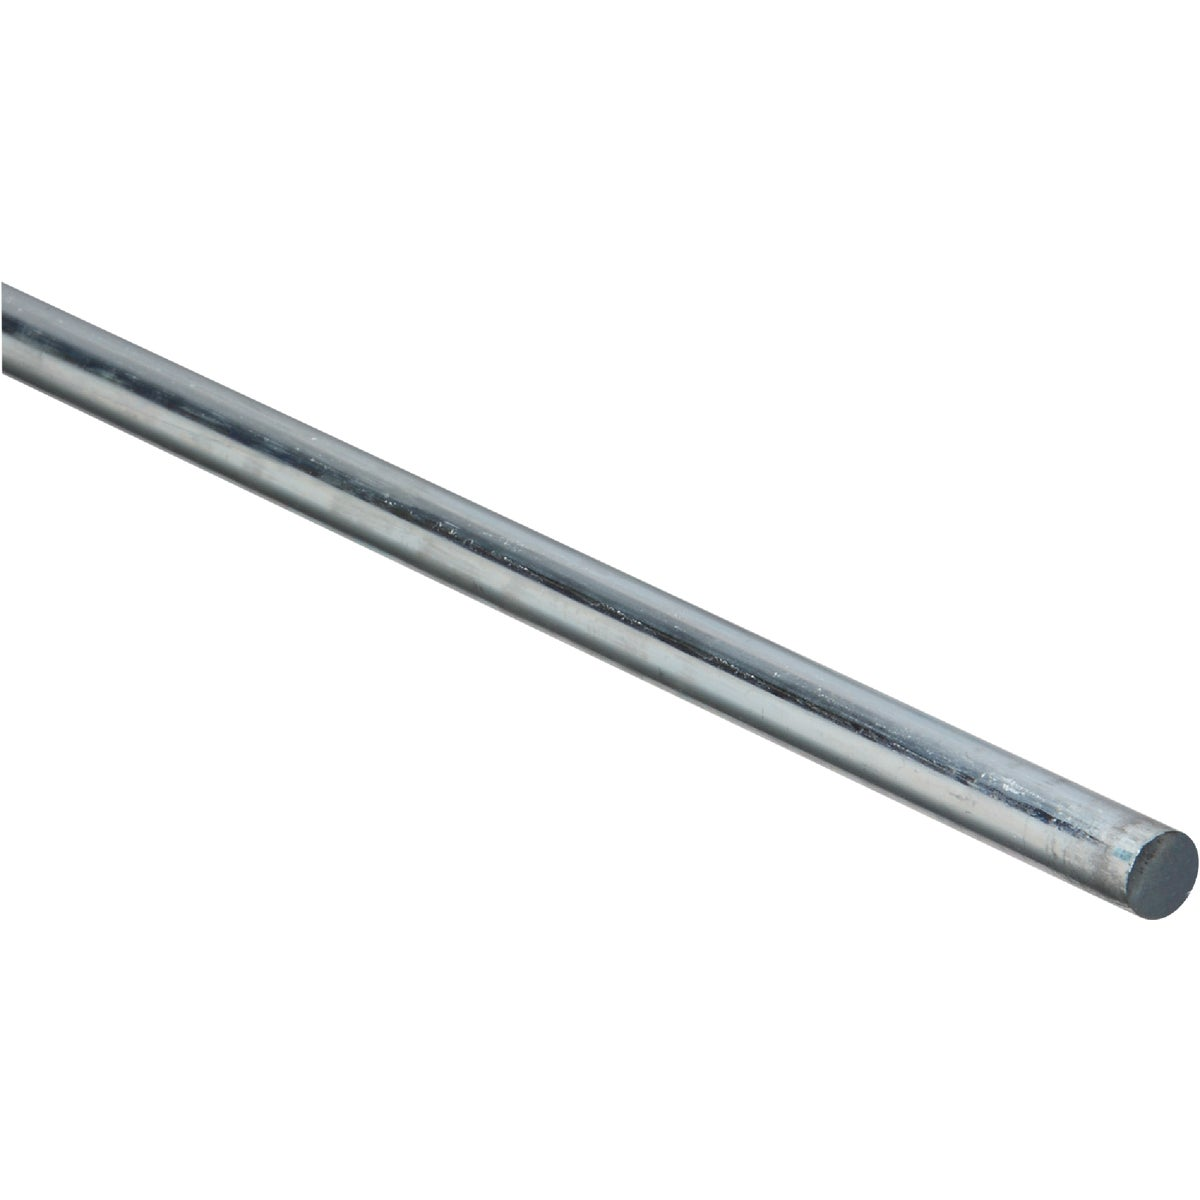 3/8X3' ROUND STEEL ROD - N179788 by National Mfg Co